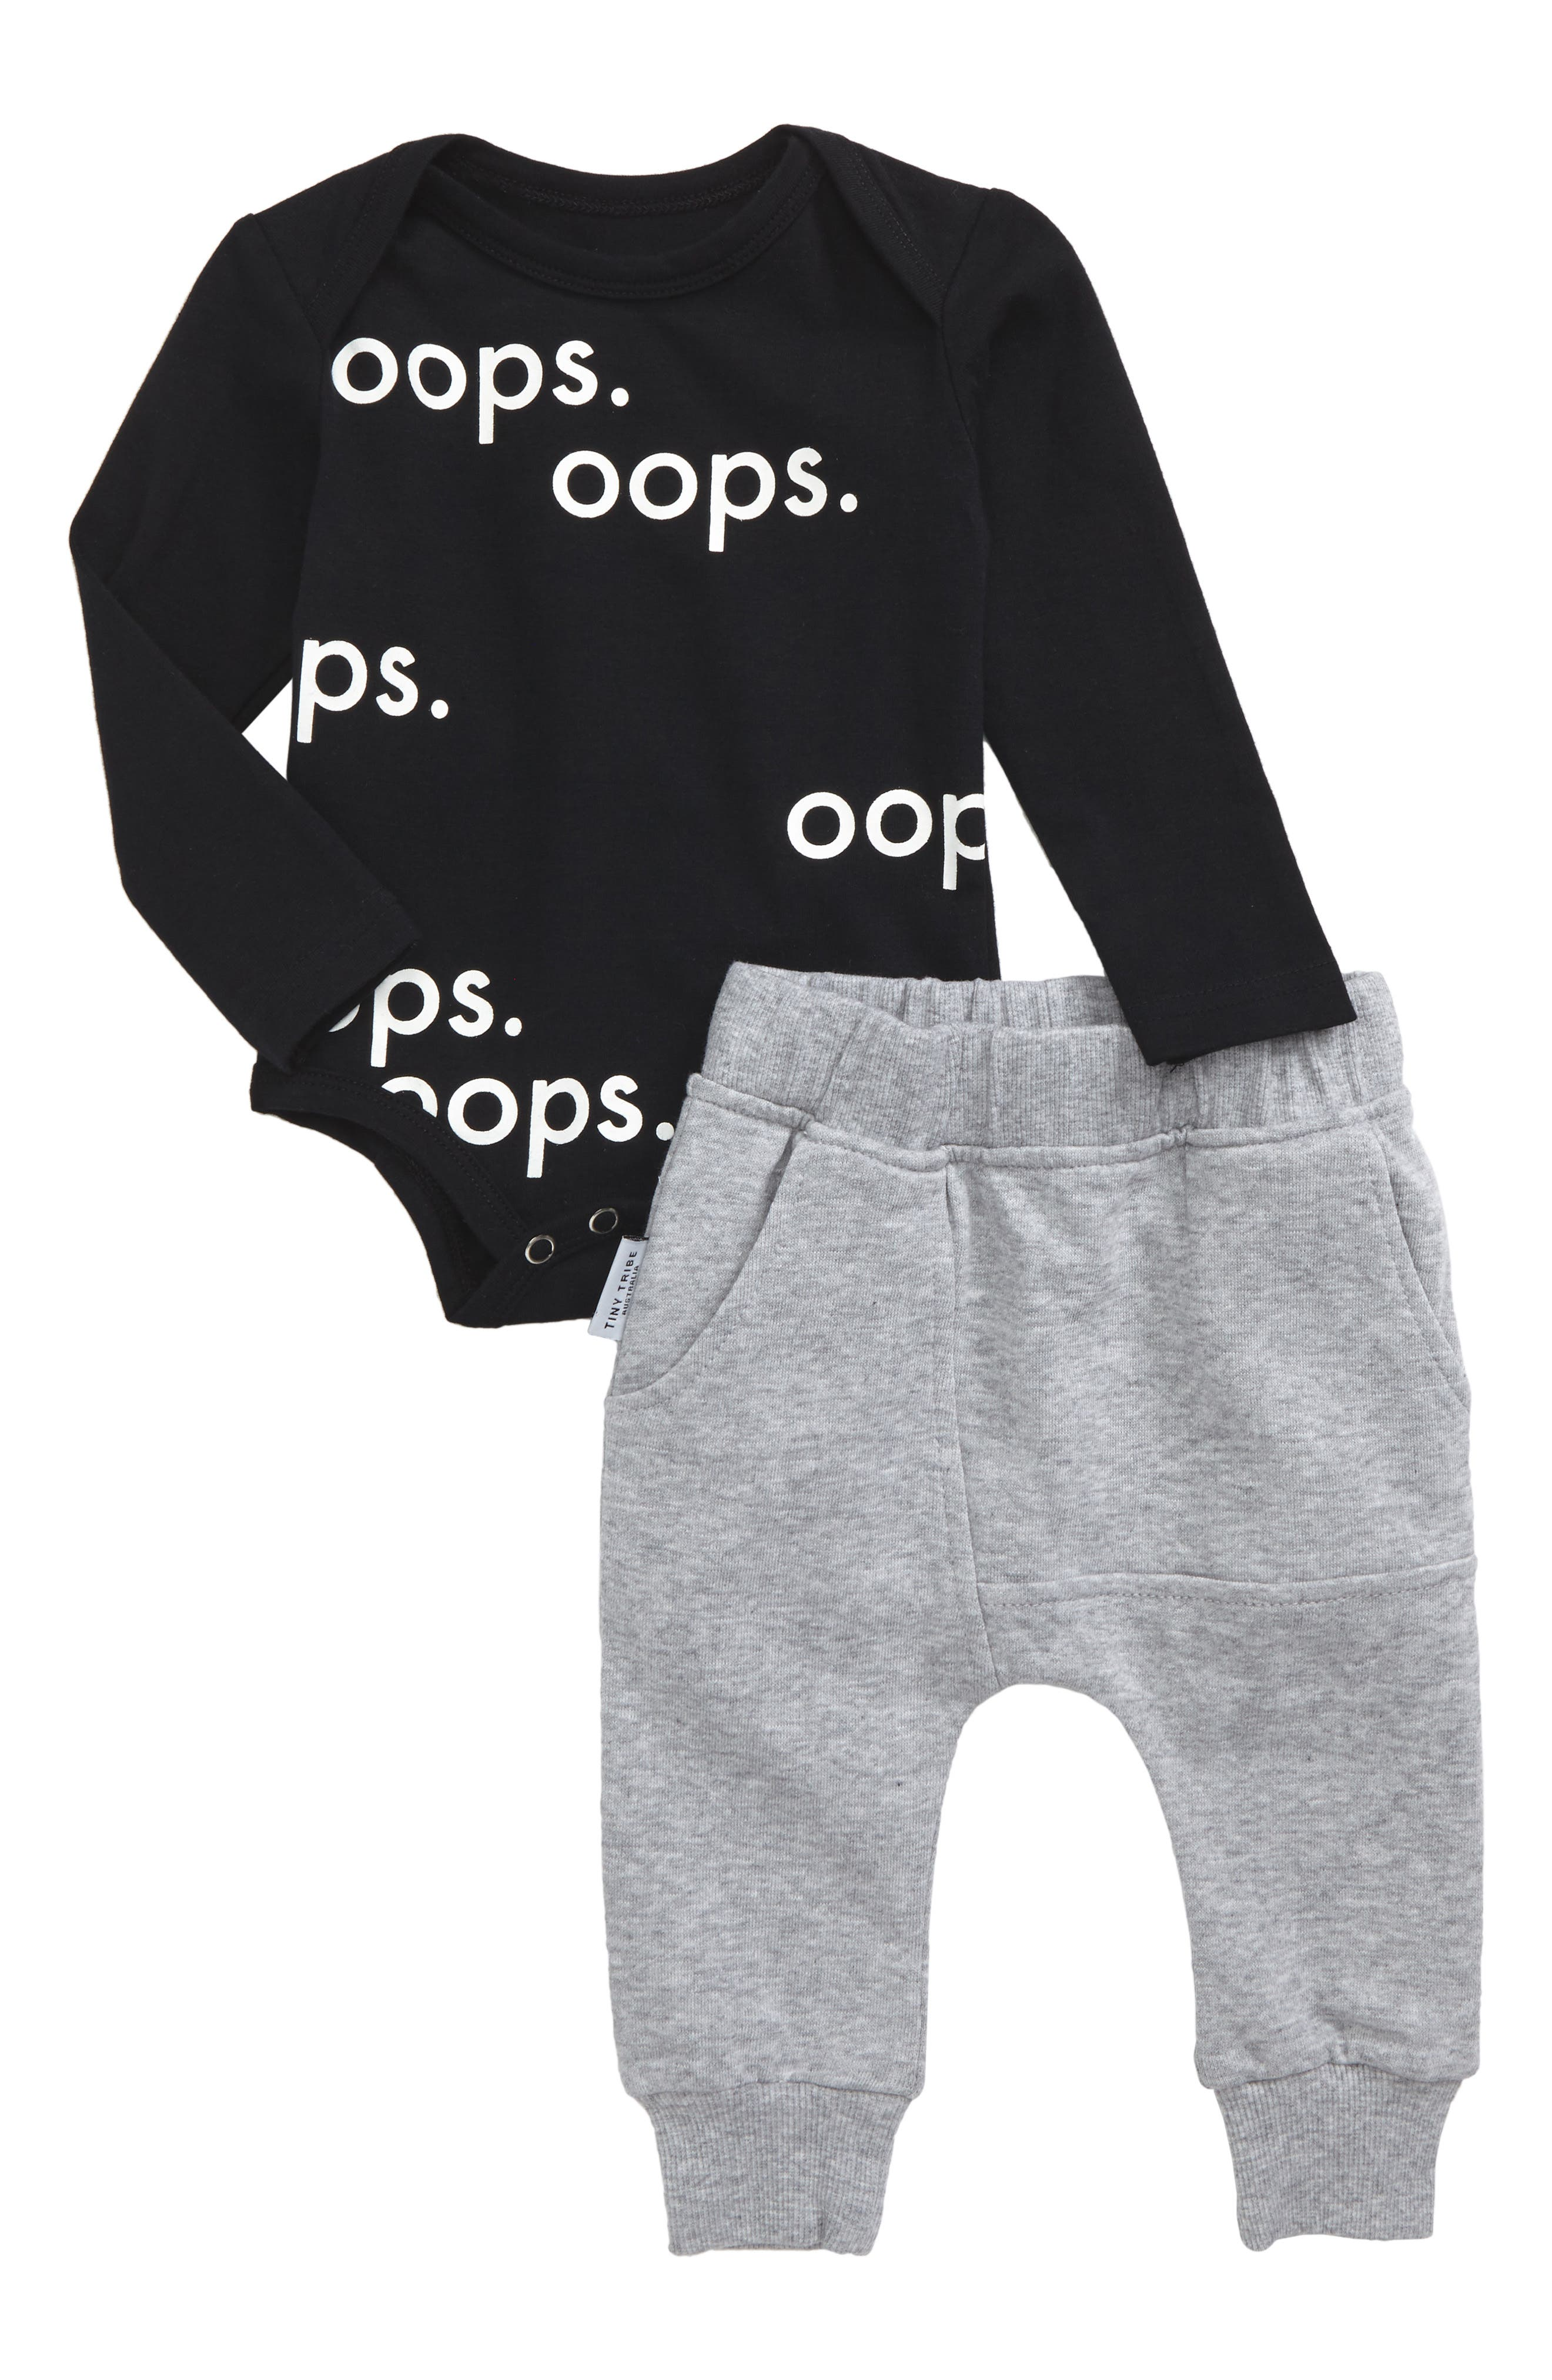 Oops Bodysuit & Sweatpants Set,                         Main,                         color, Black And White